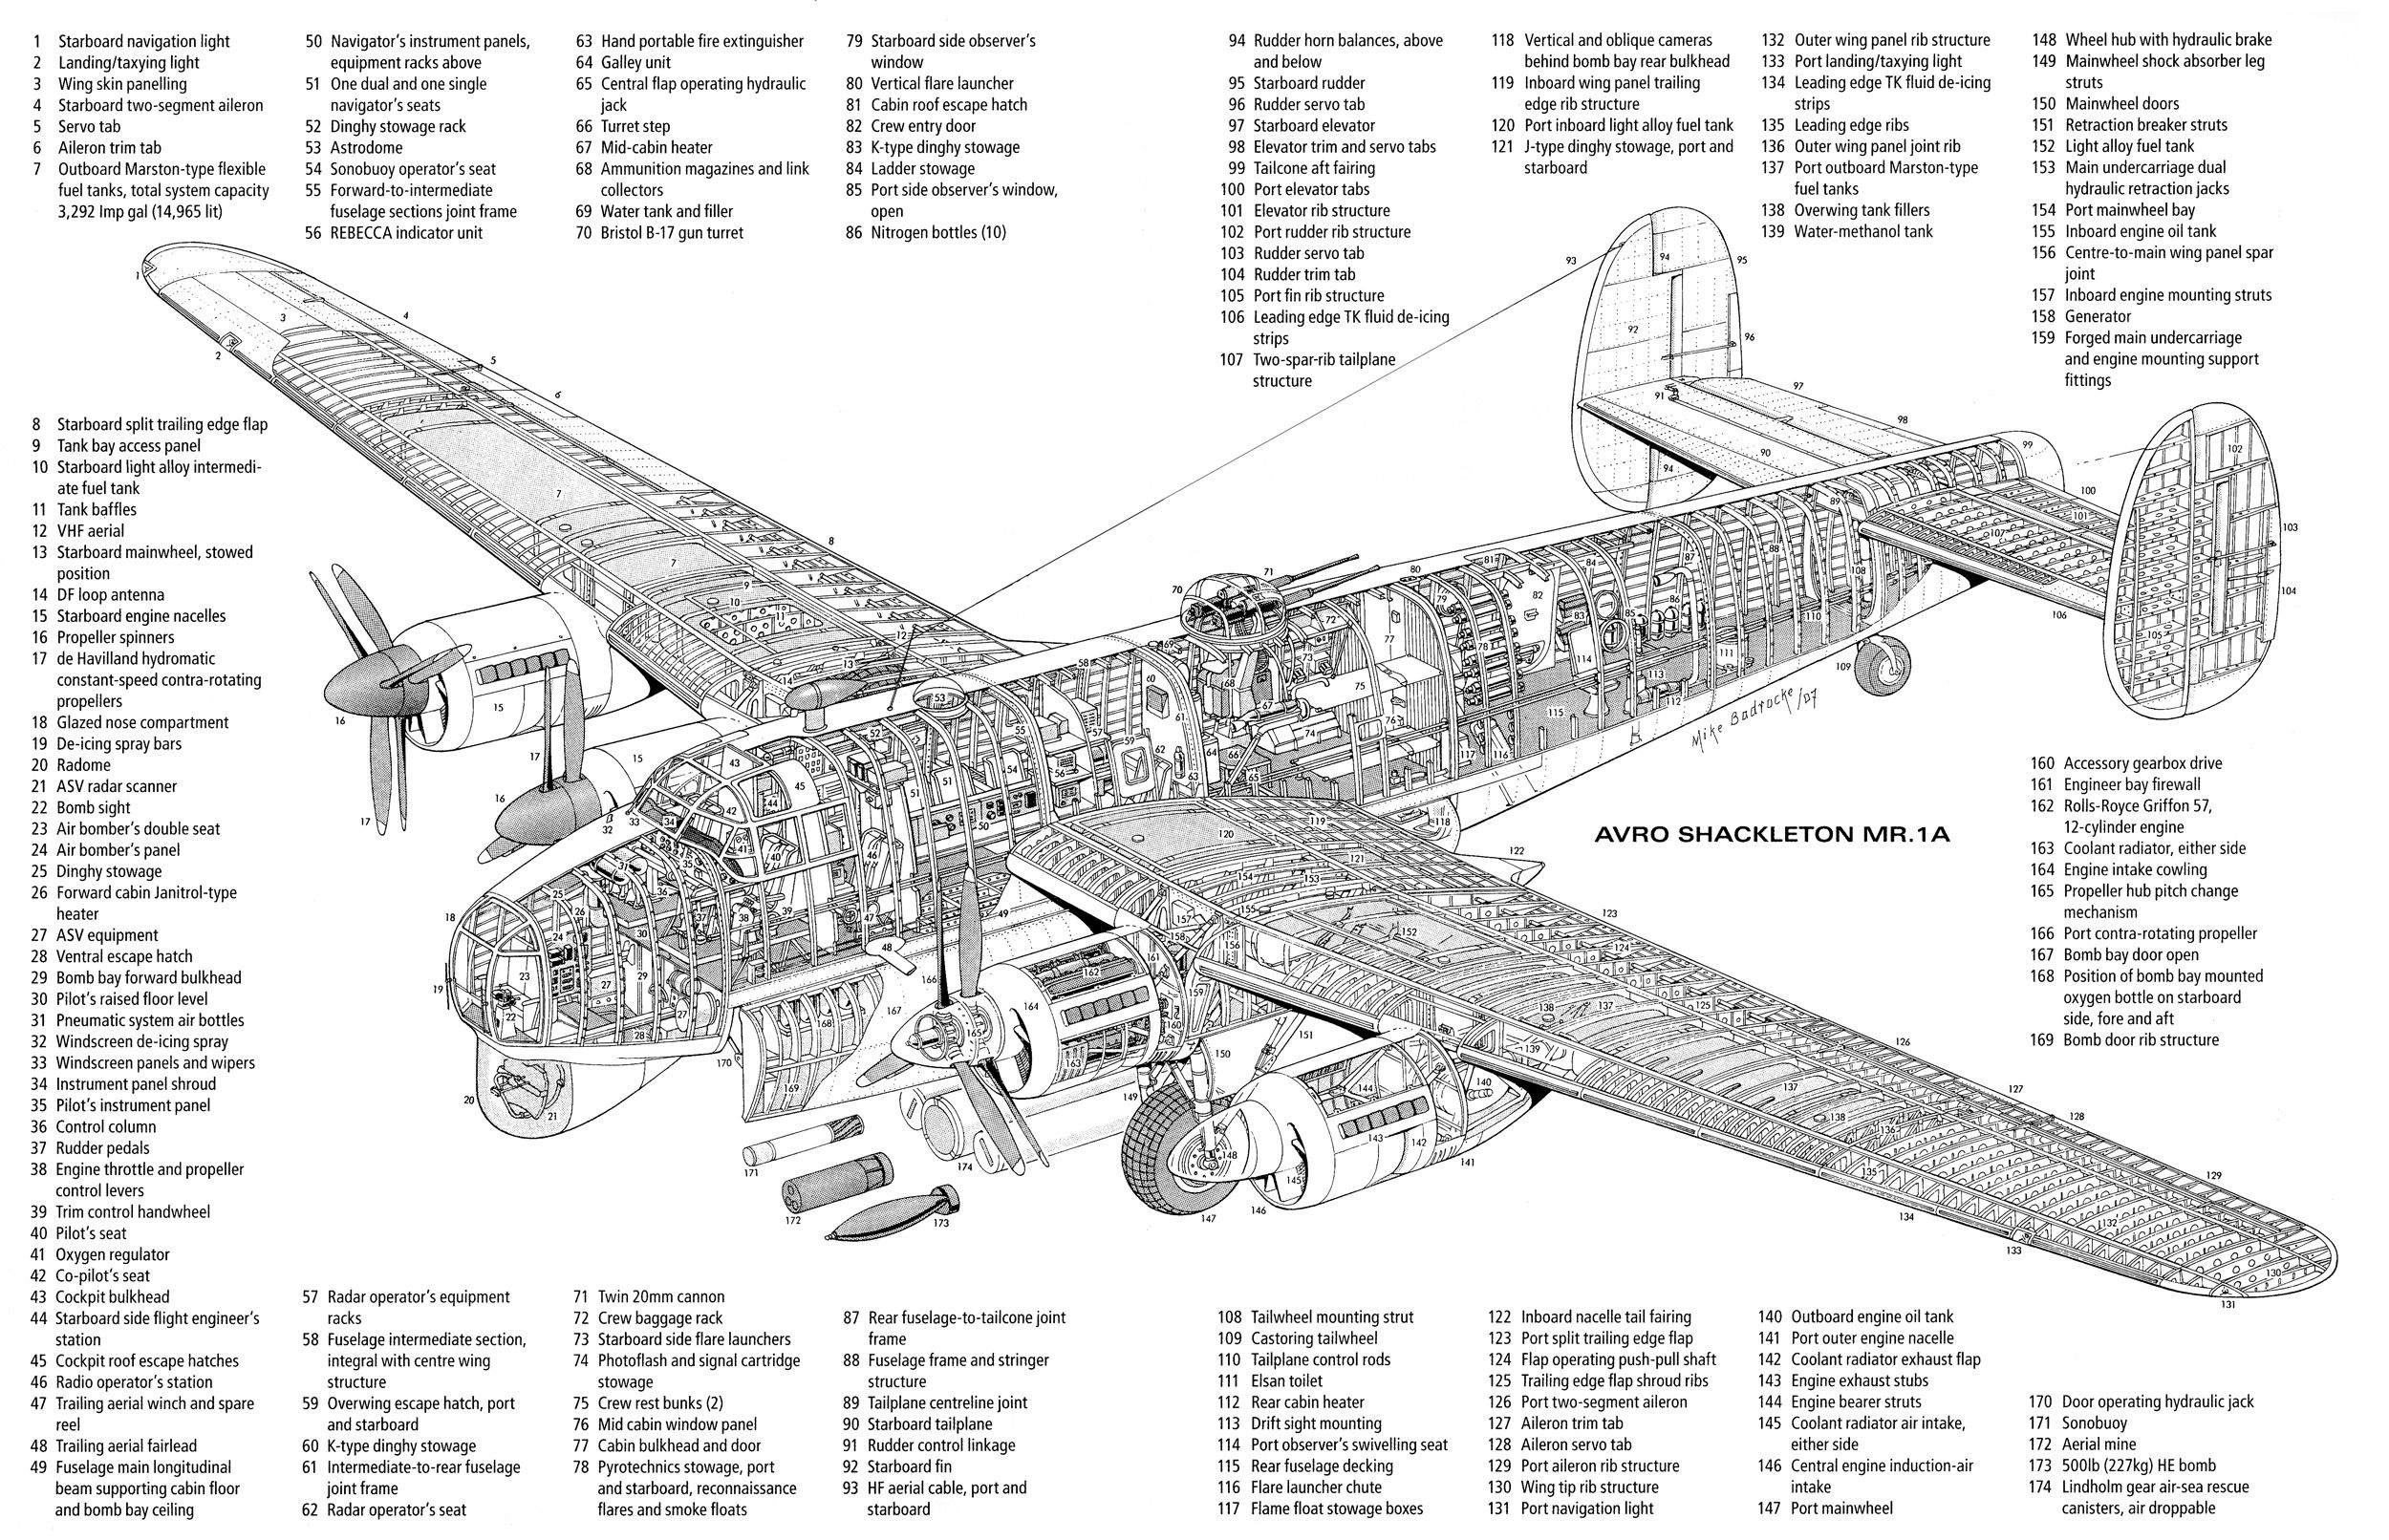 De Havilland Cutaway And Mosquitoes